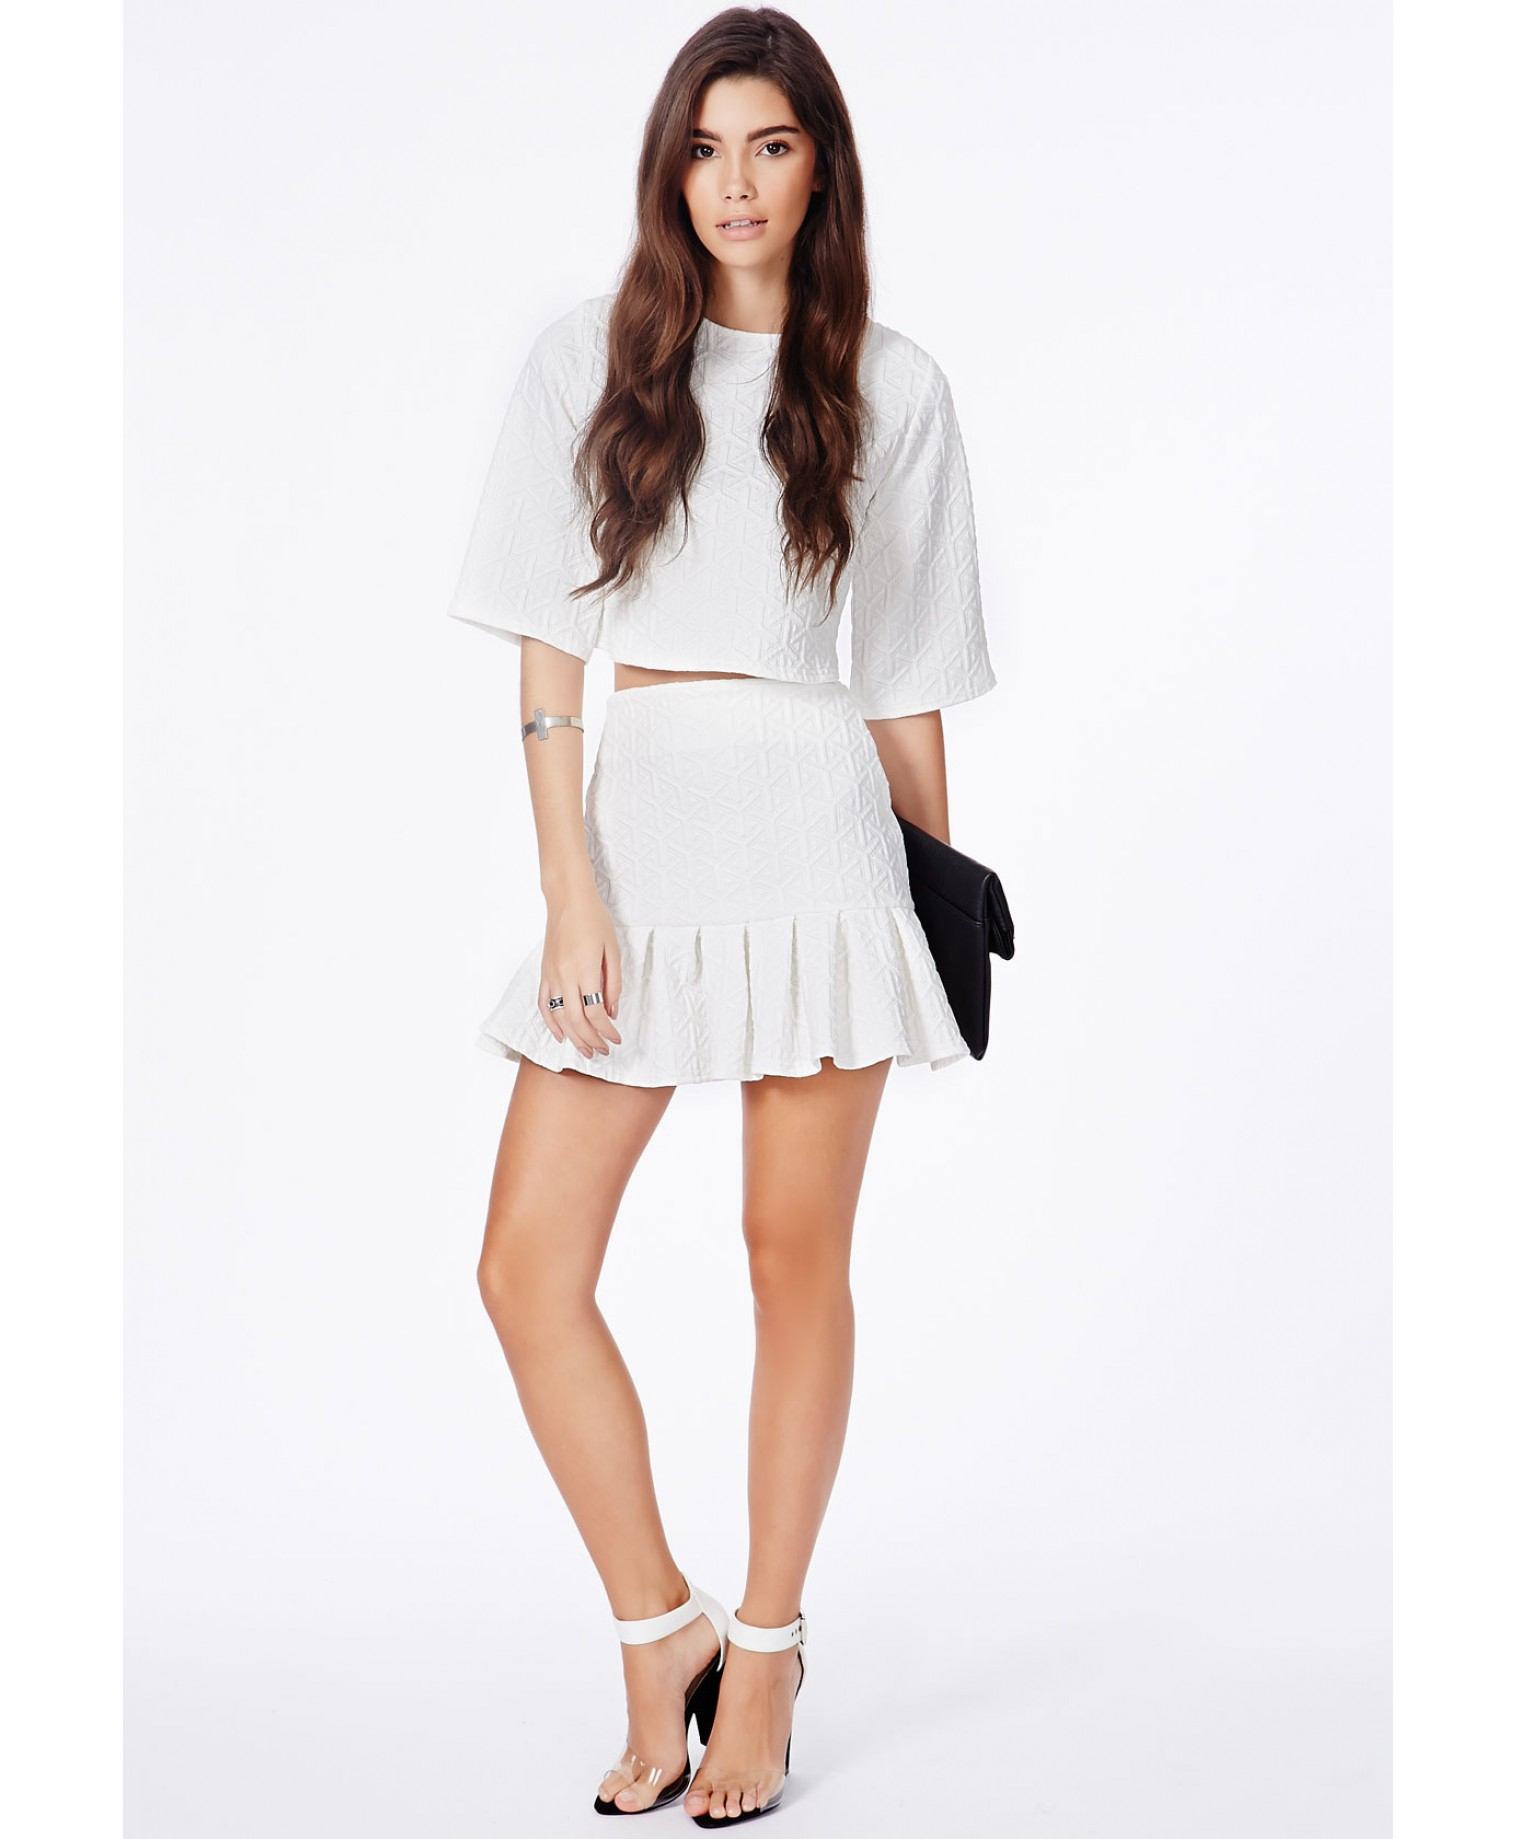 Missguided Mattie White Textured Pleated Mini Skirt in White | Lyst